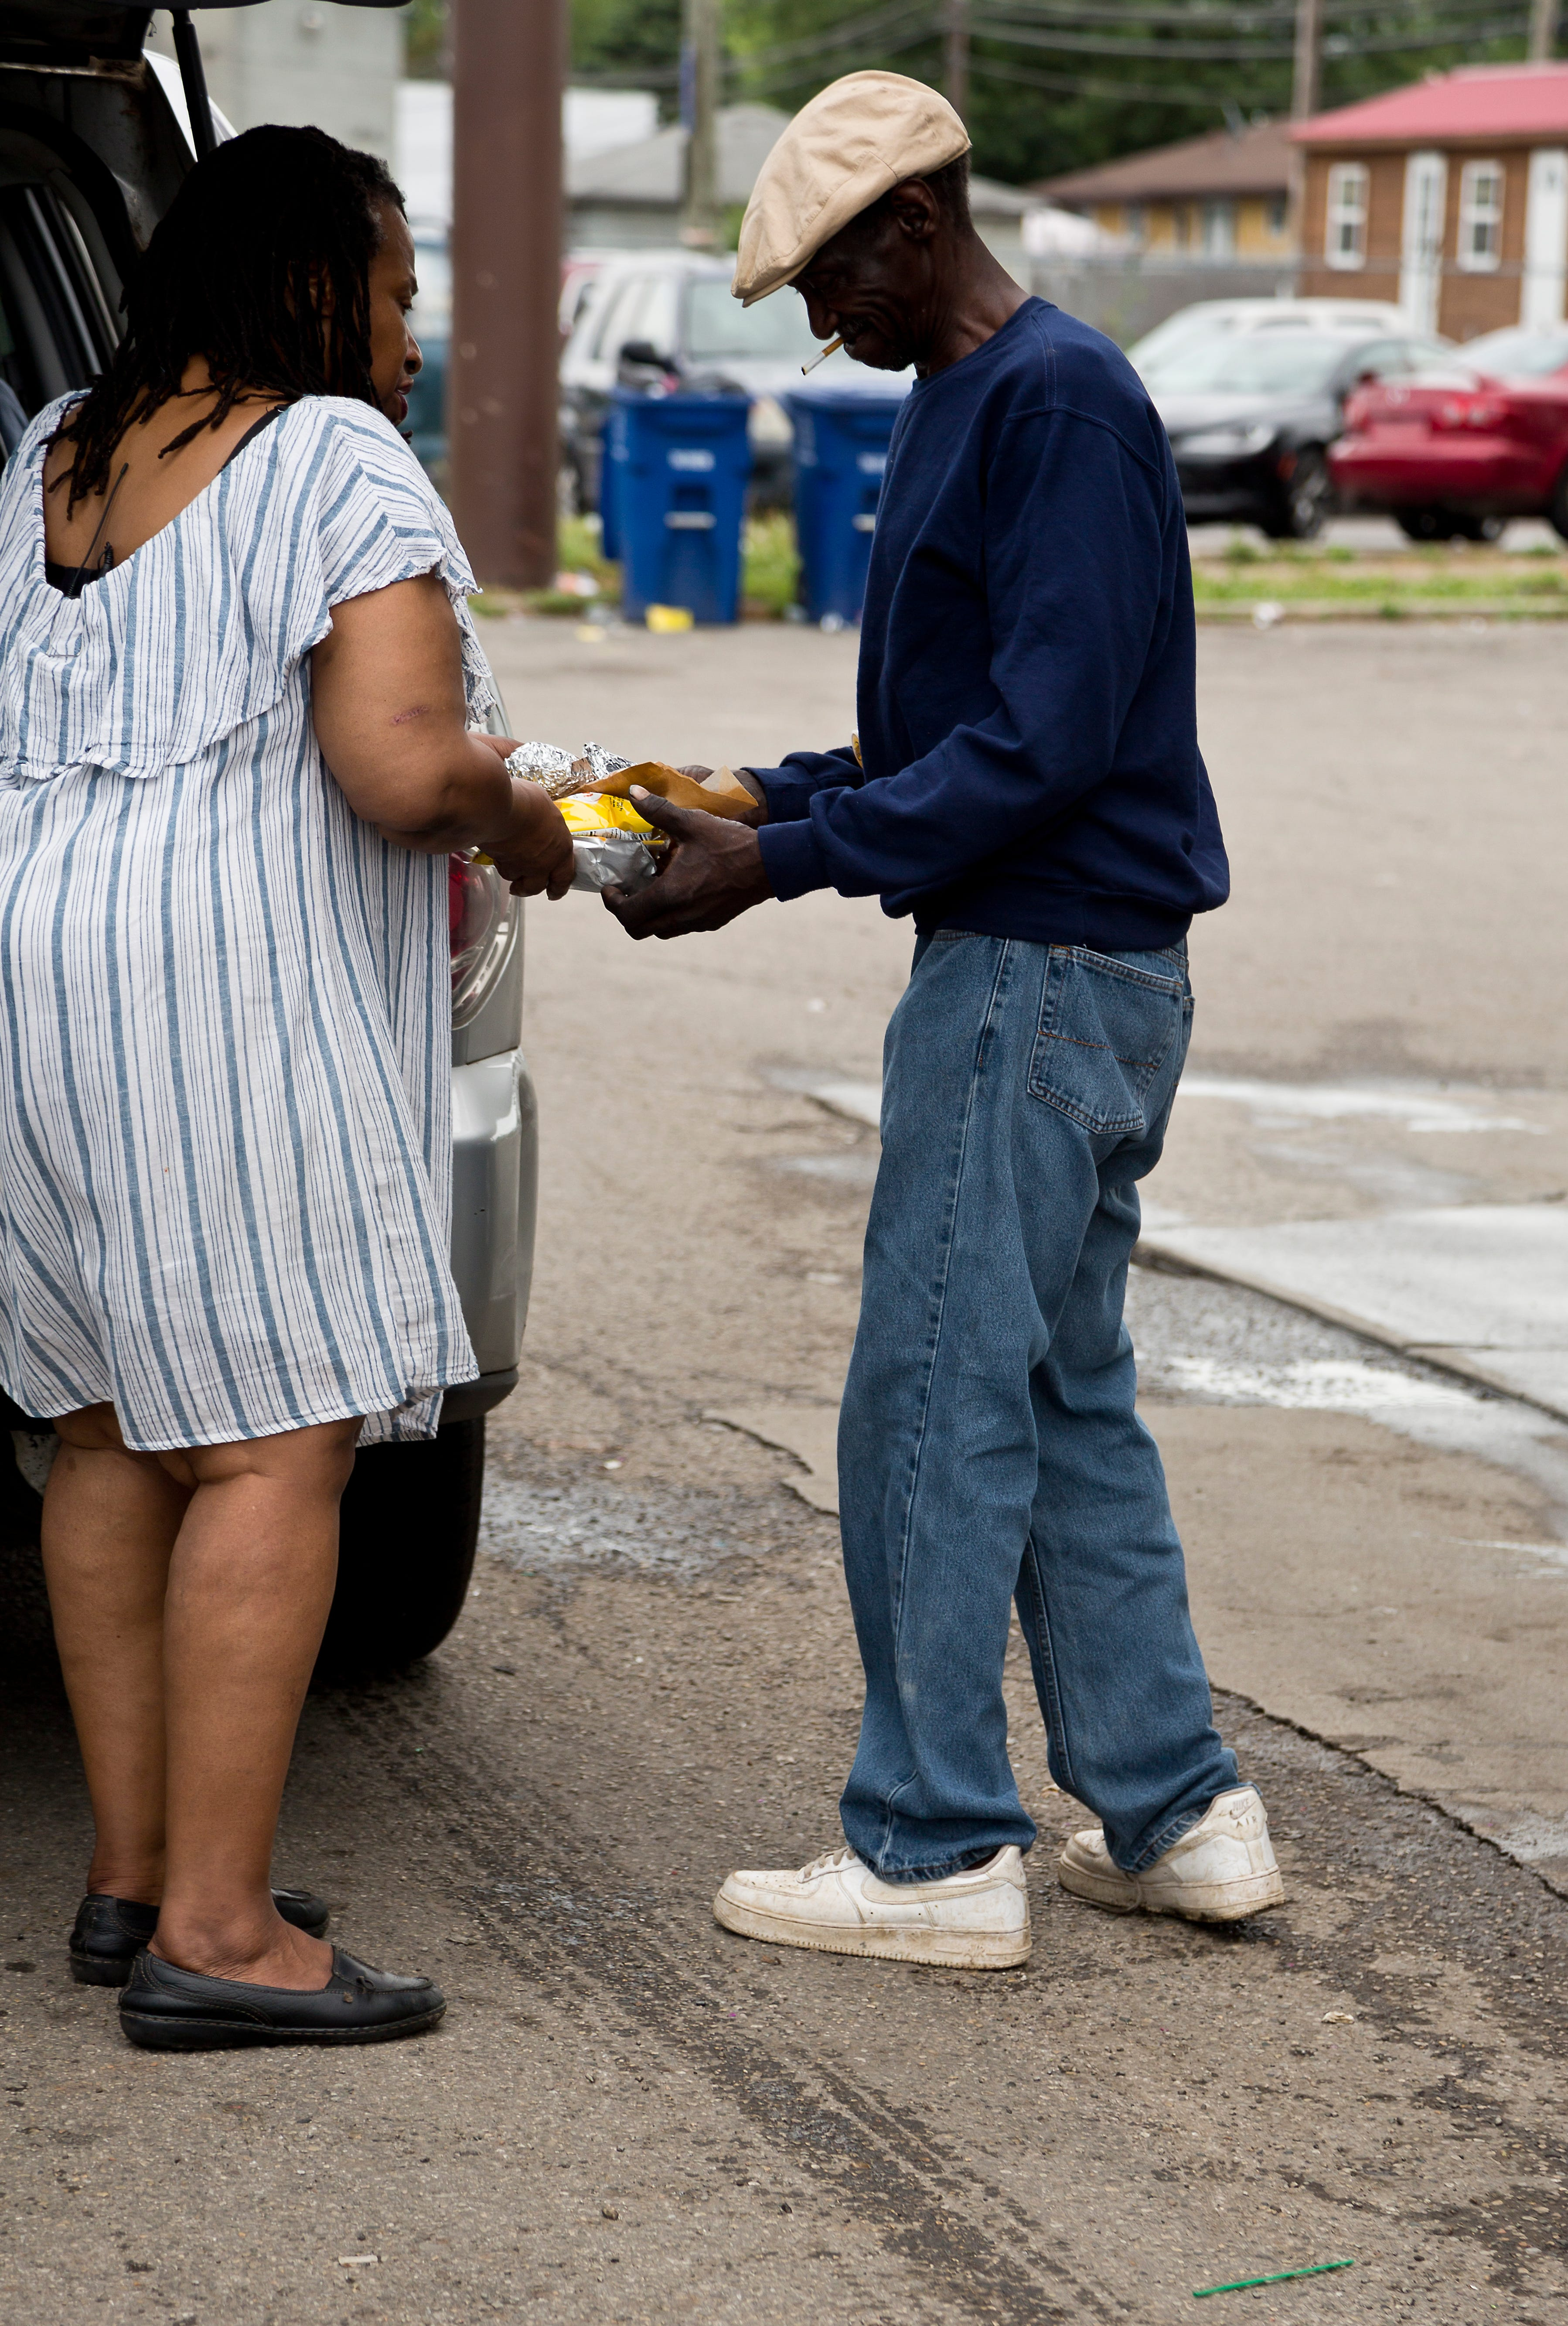 Everyday Hero finalist Debra McCauley hands out food to members of Columbus's homeless population on Thursday, July 1, 2021.